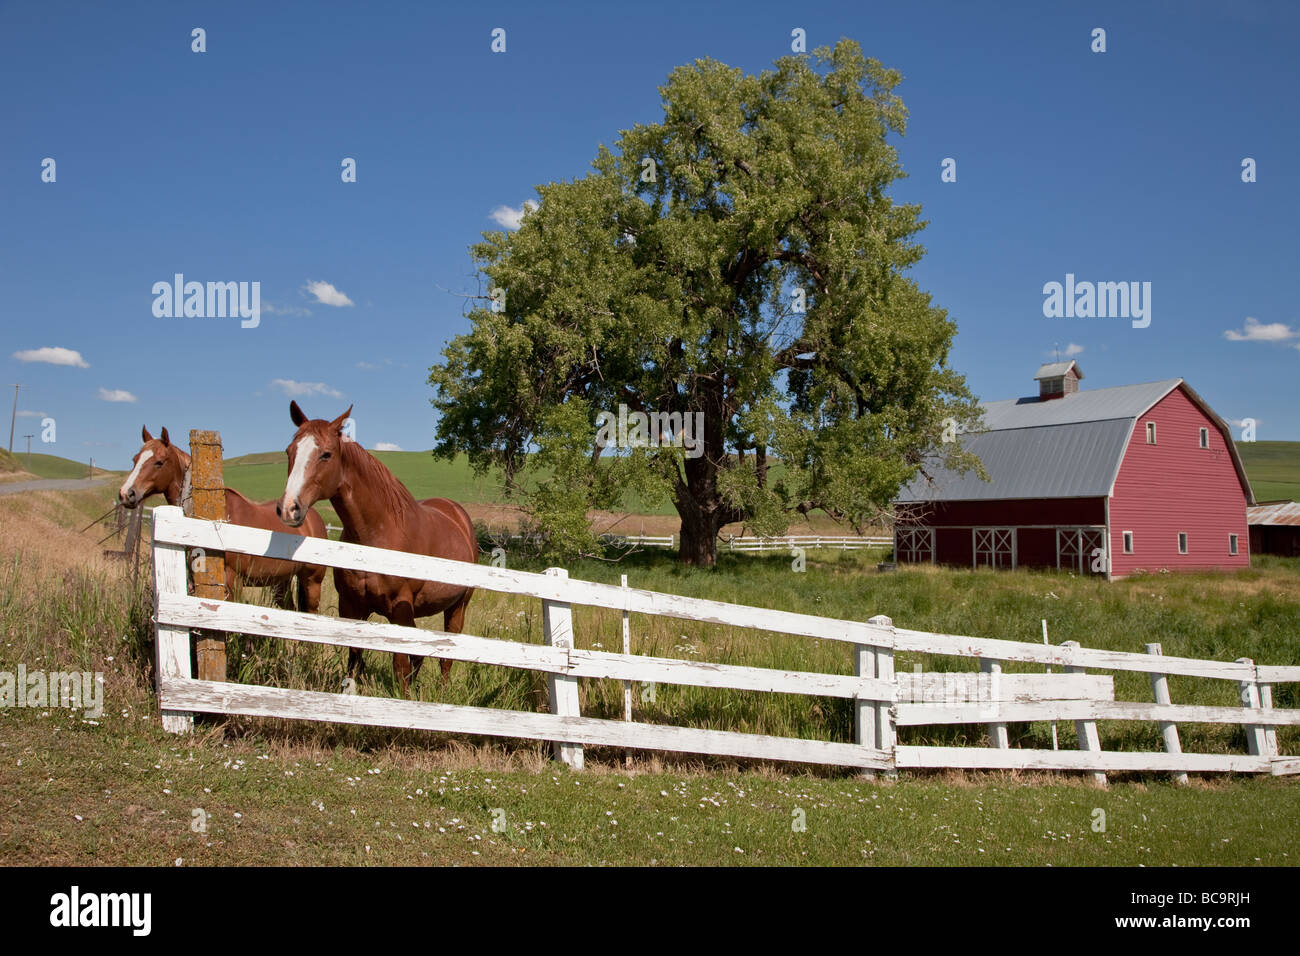 Near Pullman, Washington, in Palouse Country, Southeastern Washington State. Horses and Red Barn. Stock Photo